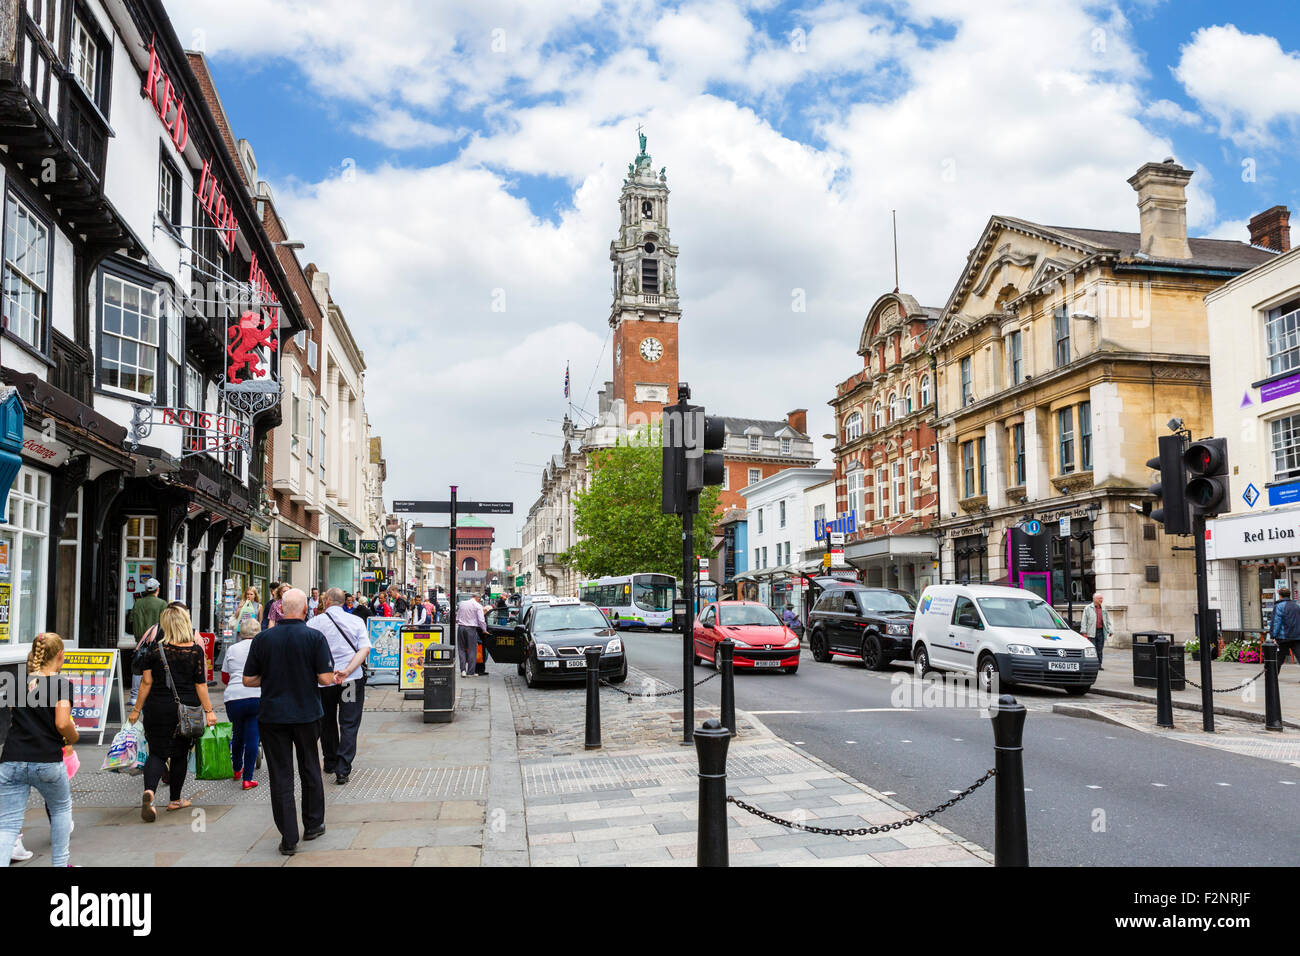 The High Street, Colchester, Essex, England, UK - Stock Image